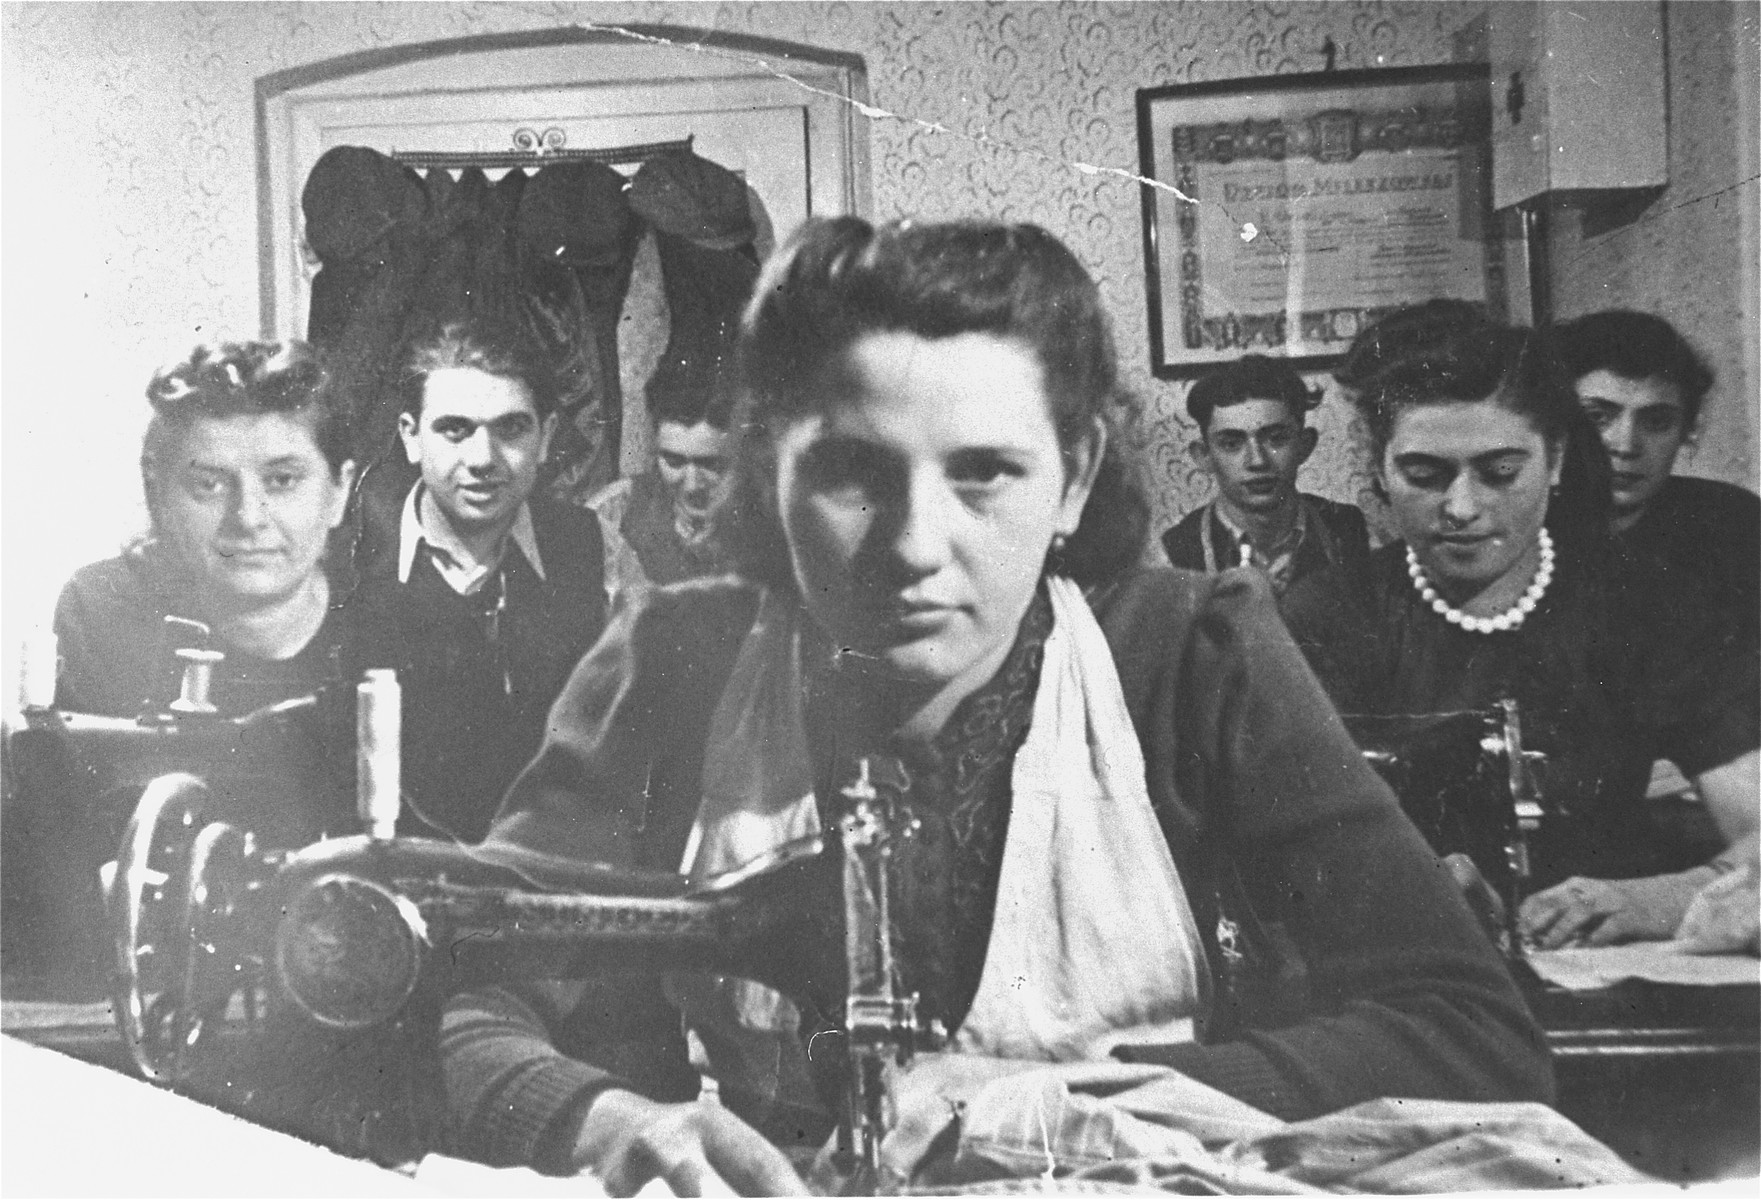 Laborers at work in a Jewish owned garment factory that made children's clothing in Czeladz.  The factory, which belonged to the Urman family, was taken over by the Germans in 1940.  Among those pictured is the donor, Salomon Urman (on the right at the back of the room) and his sister, Pearl Chaya (second row on the right).